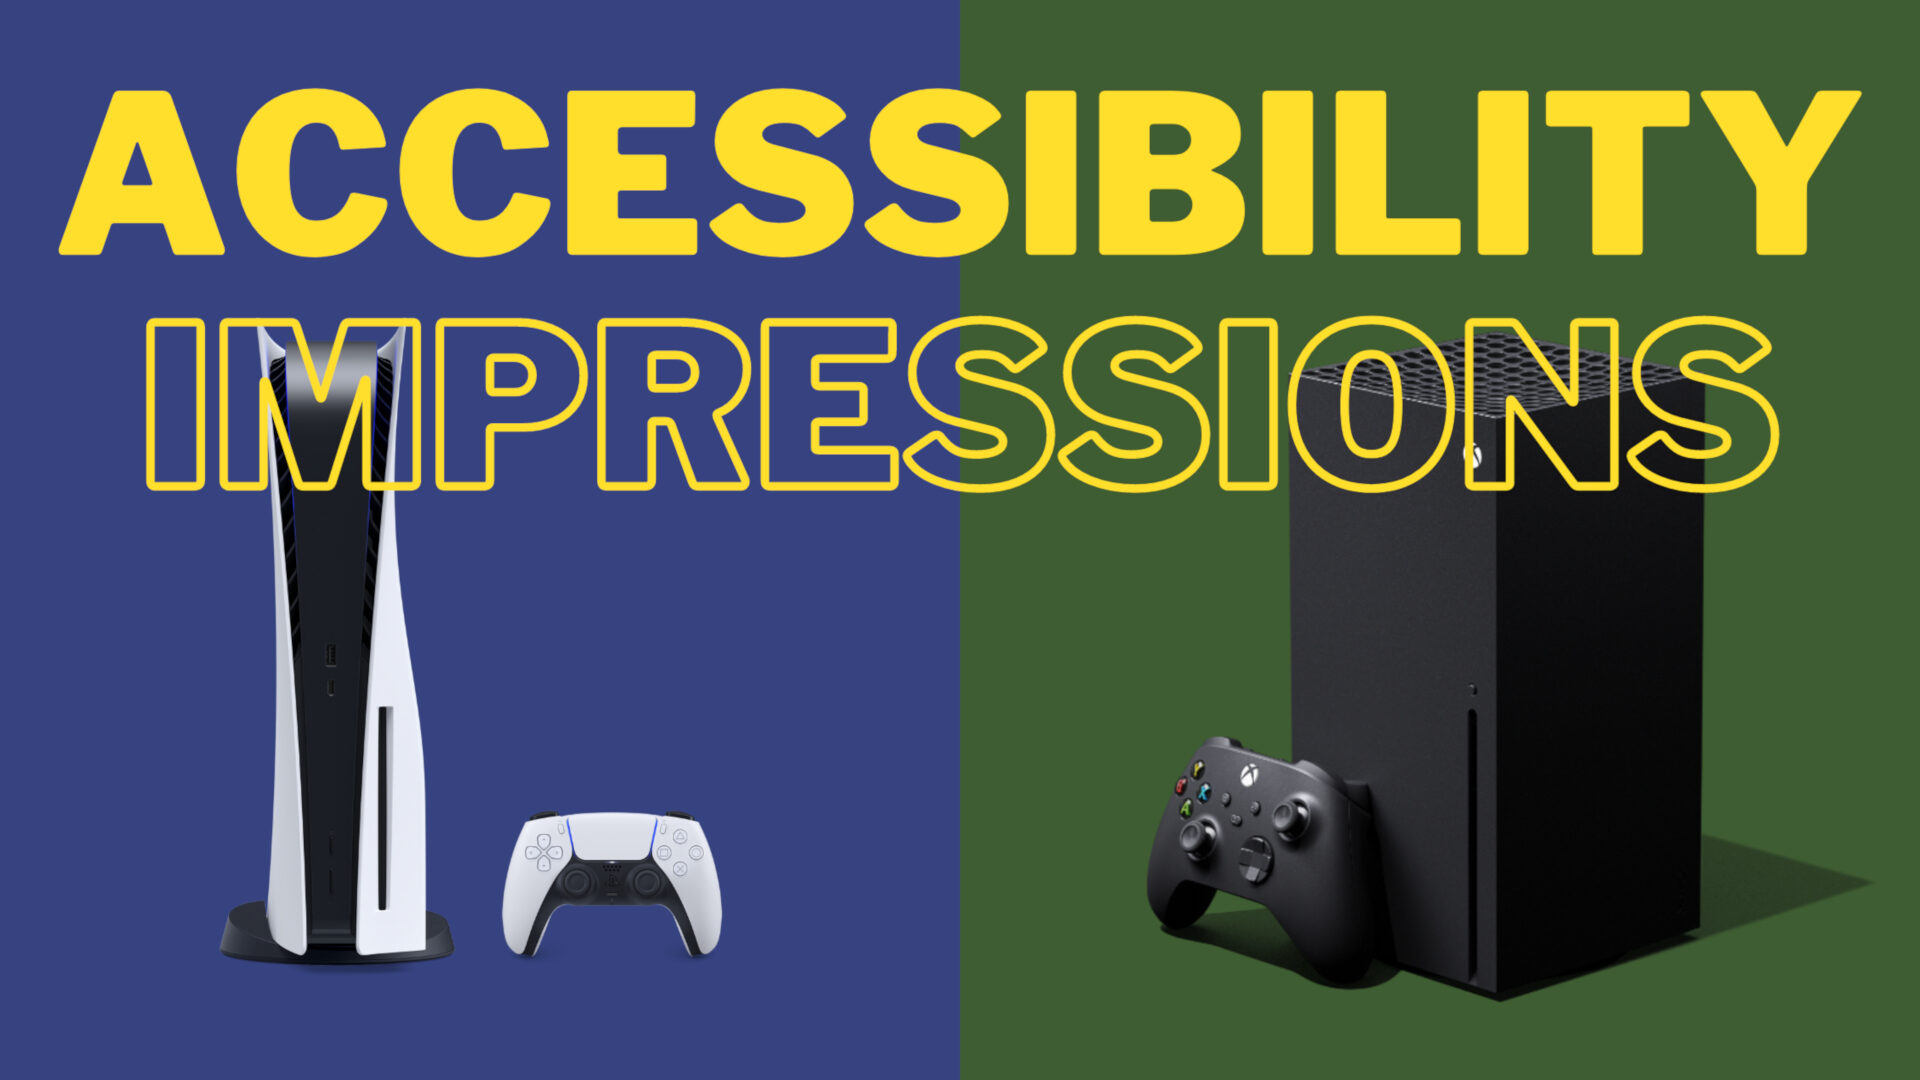 Accessibility Impressions